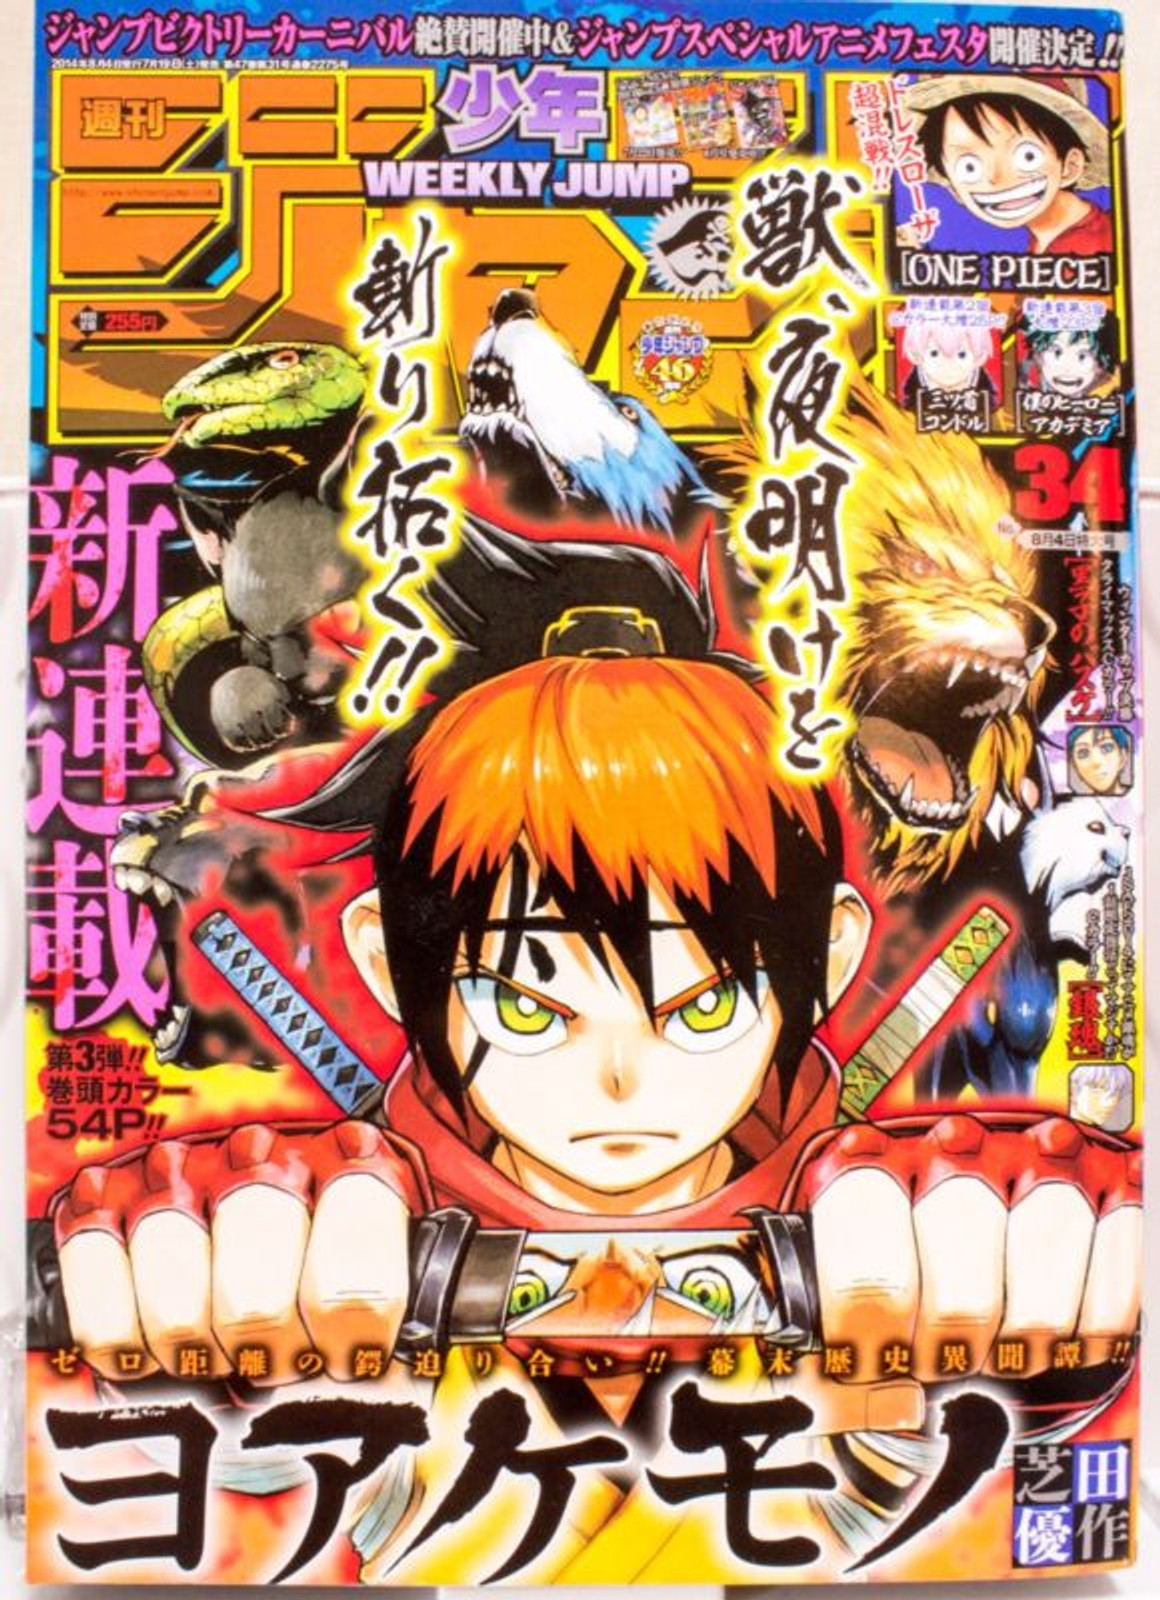 Weekly Shonen JUMP Vol.34 2014 Yoakemono / Japanese Magazine JAPAN MANGA